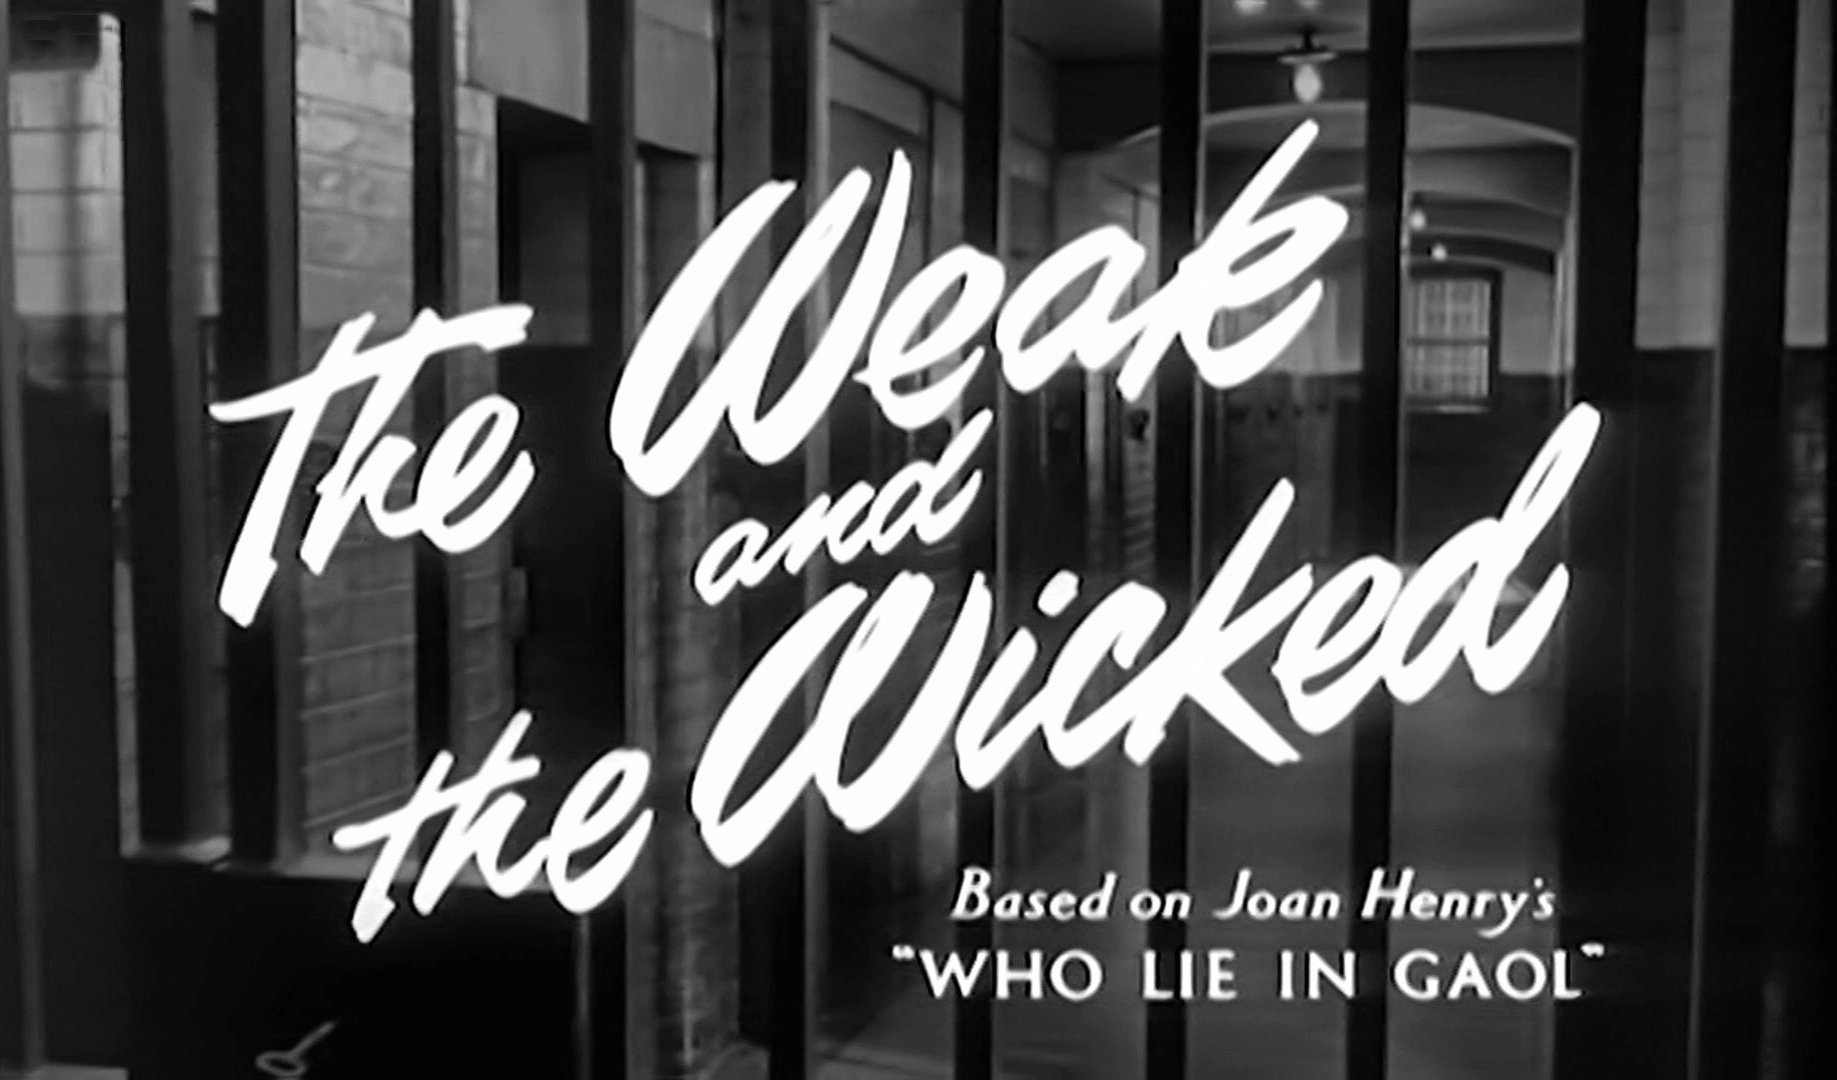 Main title from The Weak and the Wicked (1954) (3). Based on Joan Henry's 'Who Lie in Gaol'